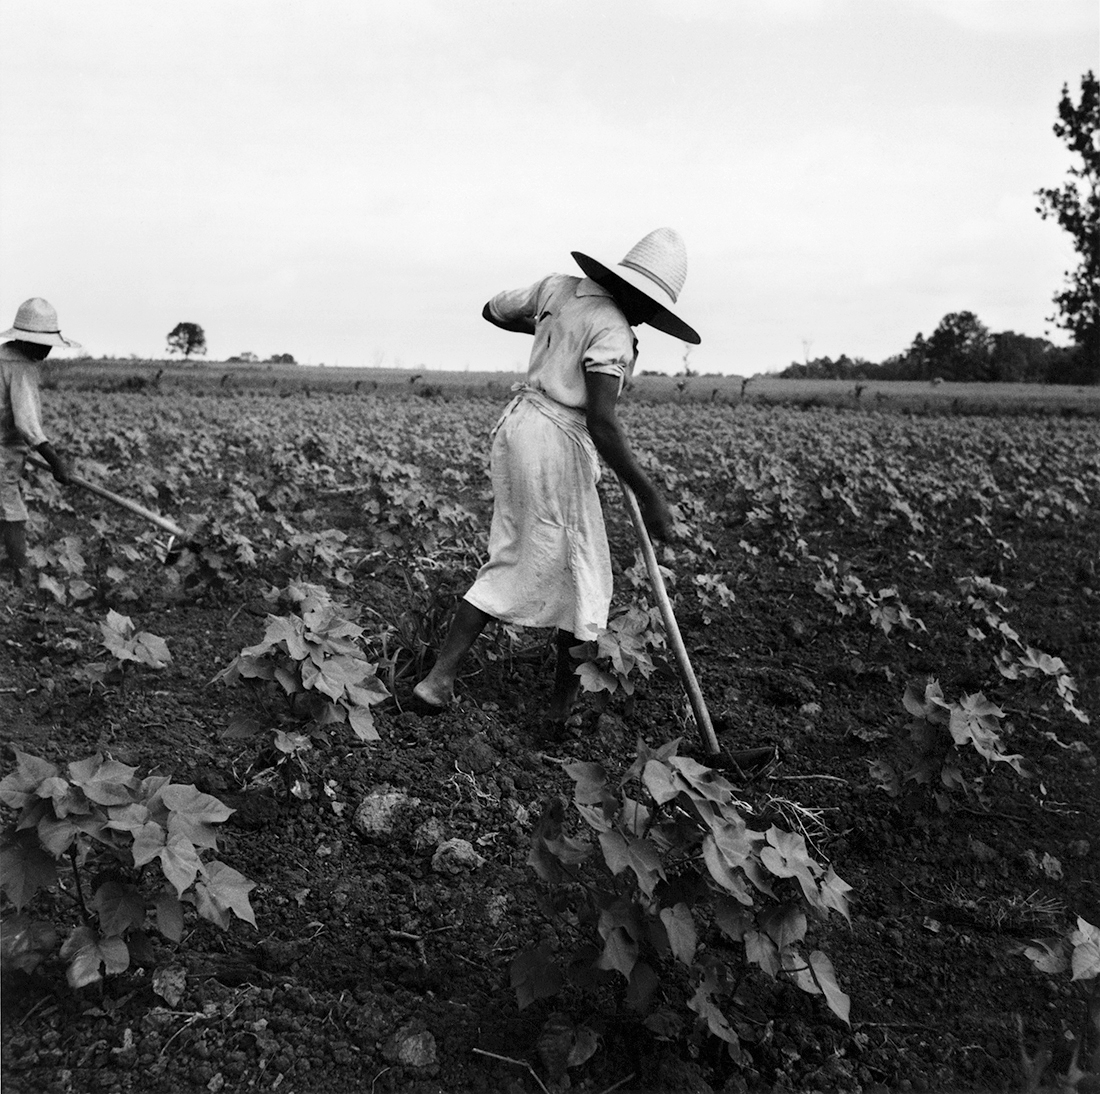 Fotó: Dorothea Lange: Near Eutah, Alabama, 1936 © The Dorothea Lange Collection, the Oakland Museum of California, City of Oakland. Gift of Paul S. Taylor